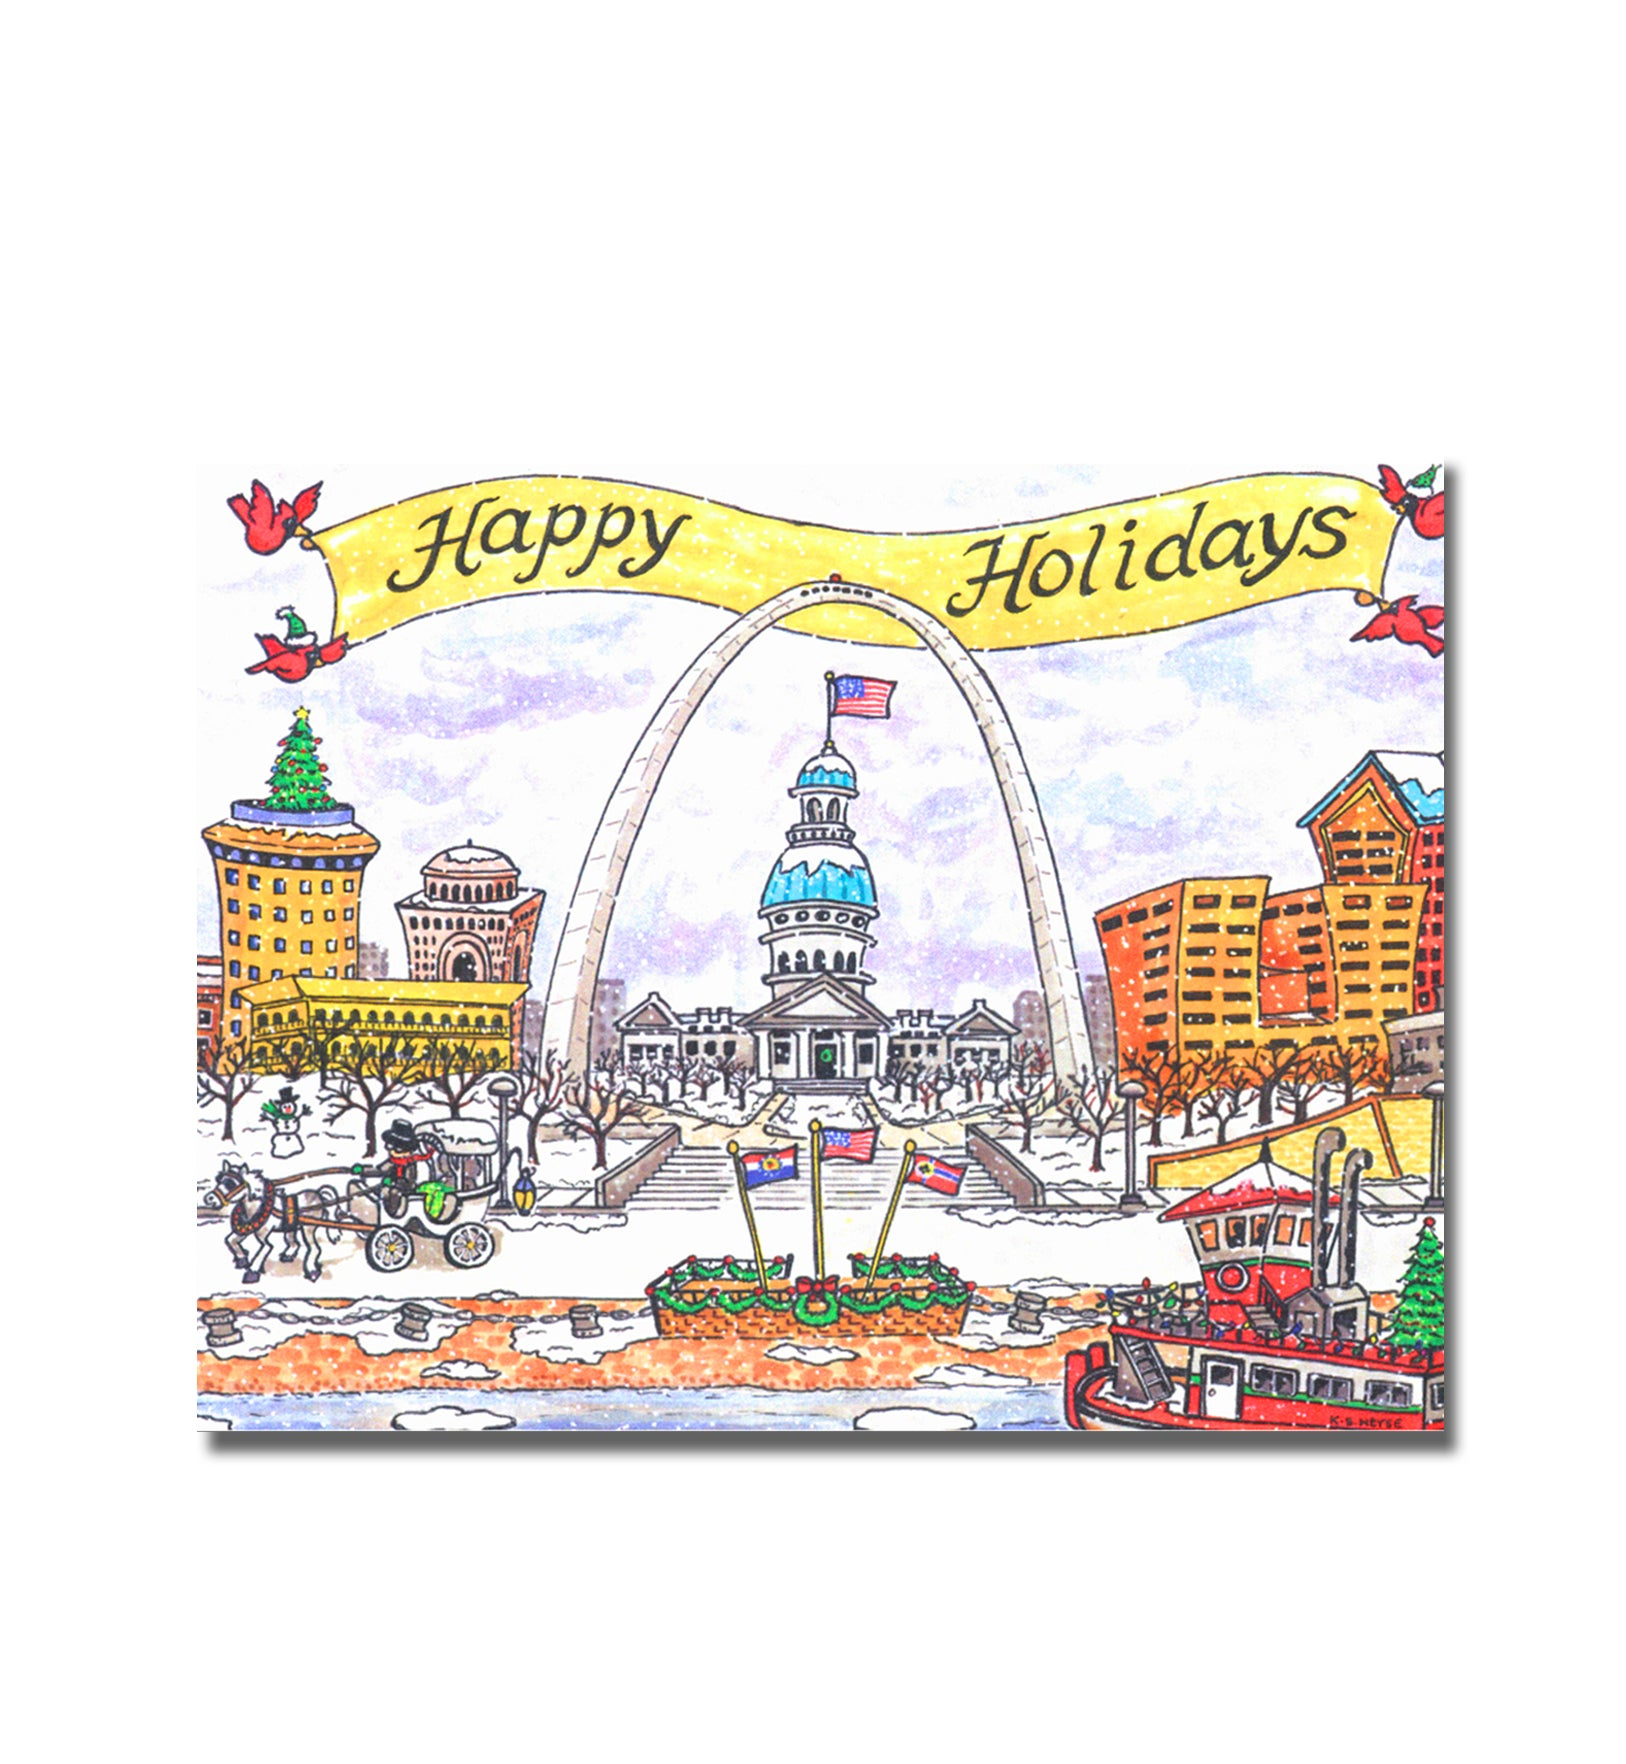 Goodnight St. Louis<br>Holiday Note Cards<br><br>Available Online and<br>at Retailers